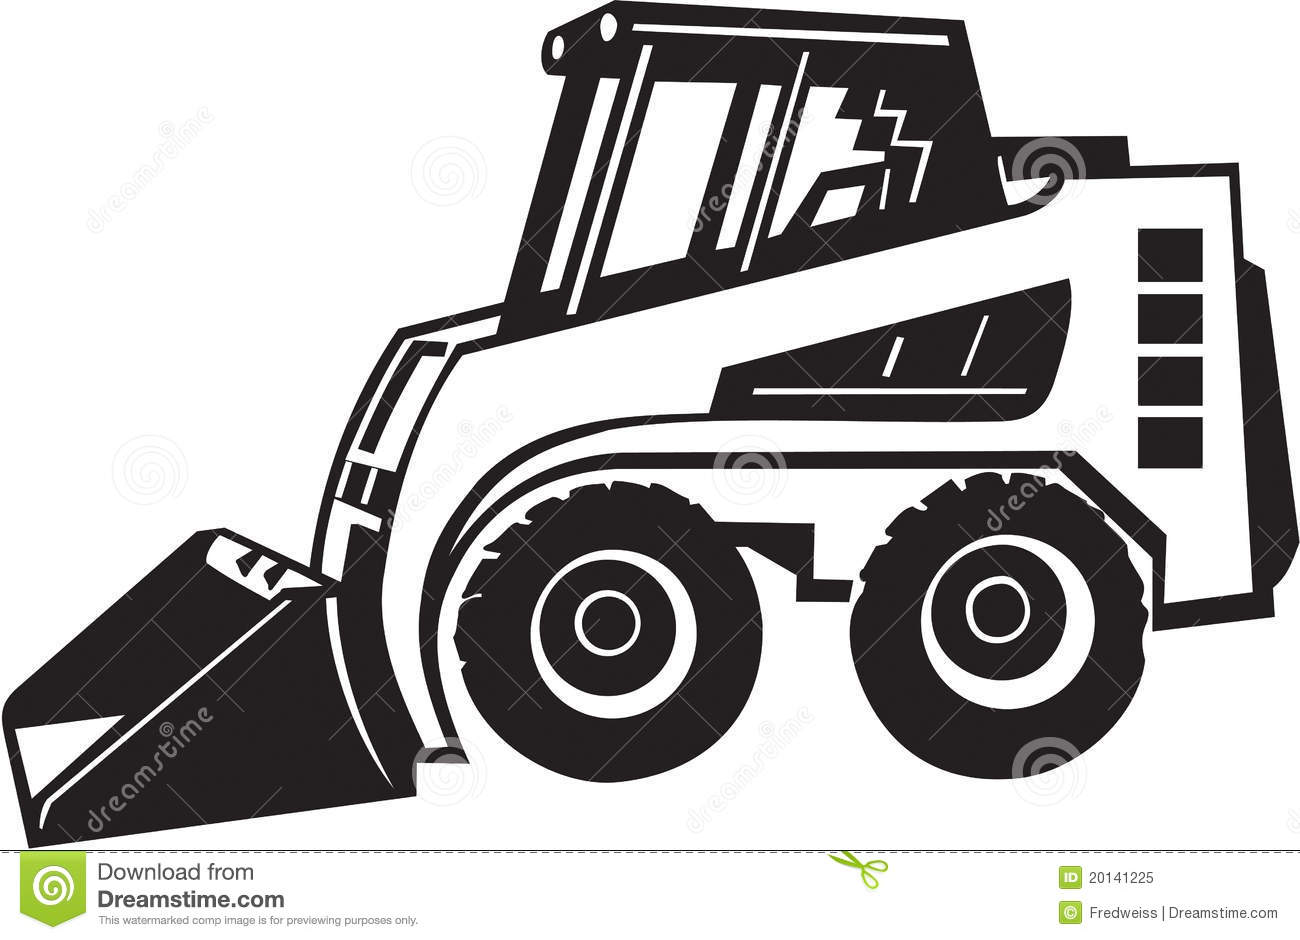 Bobcat clipart skidsteer.  collection of skid